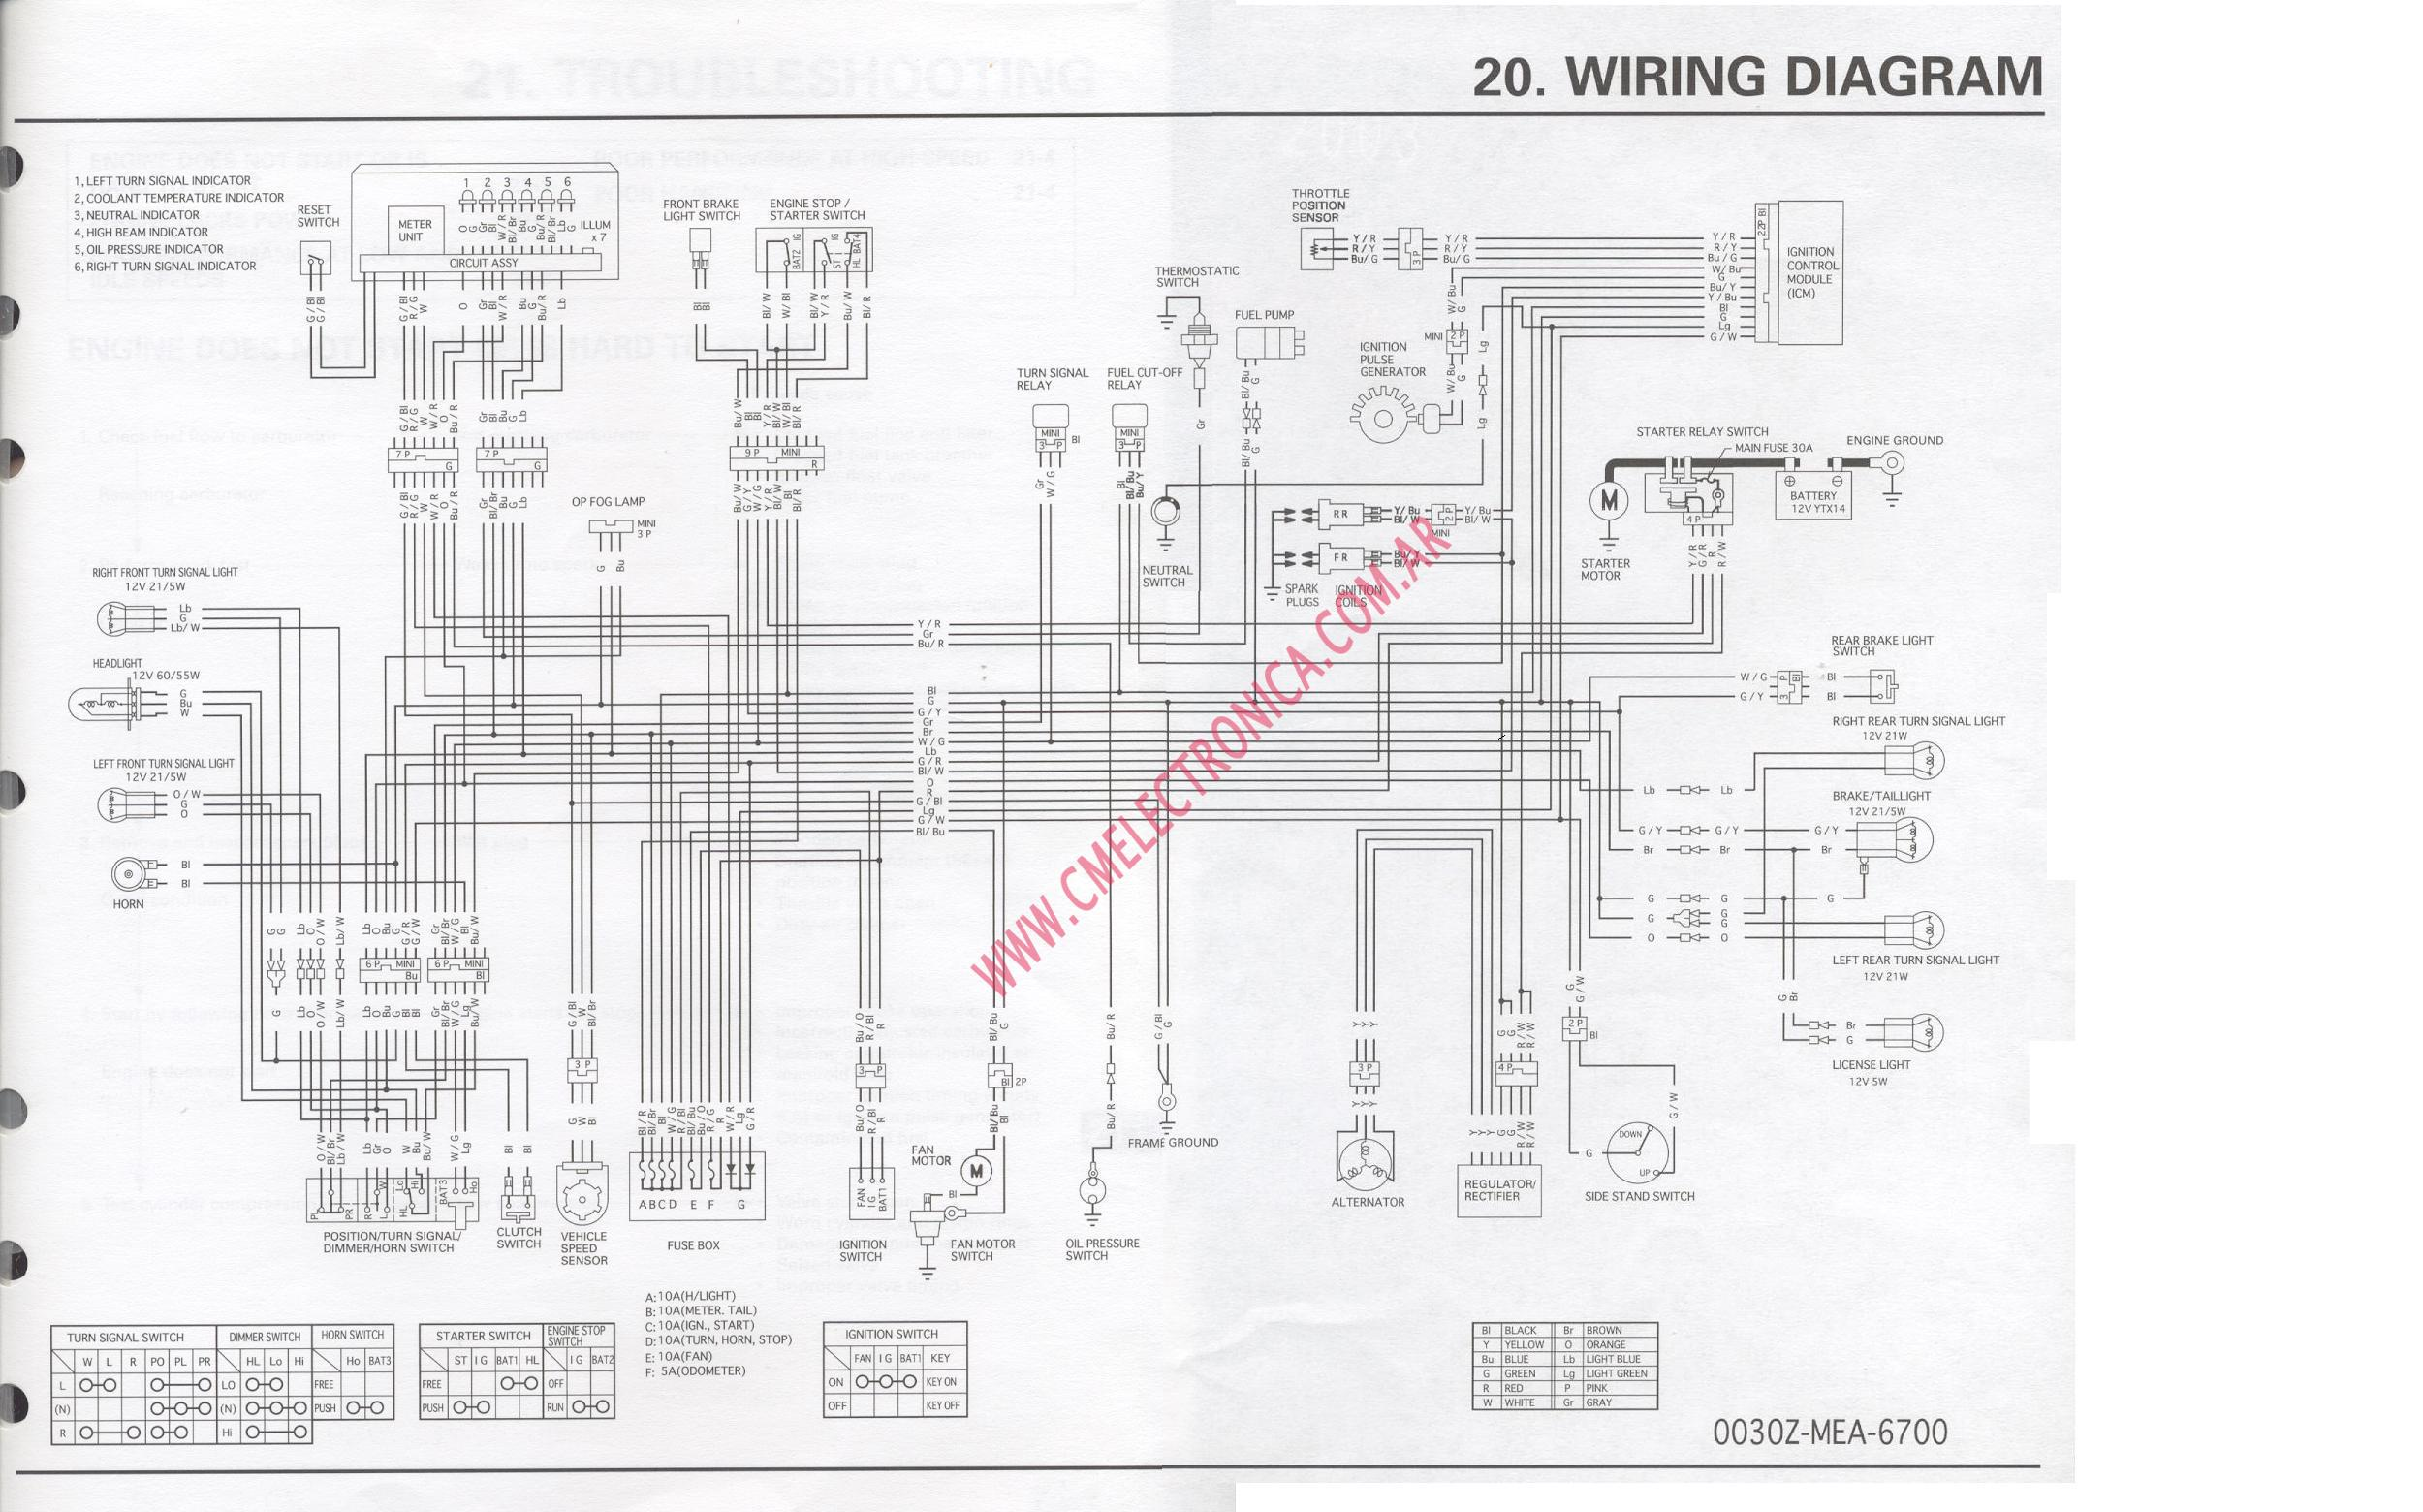 06 vtx 1300 wiring diagram wiring library  06 vtx 1300 wiring diagram #14